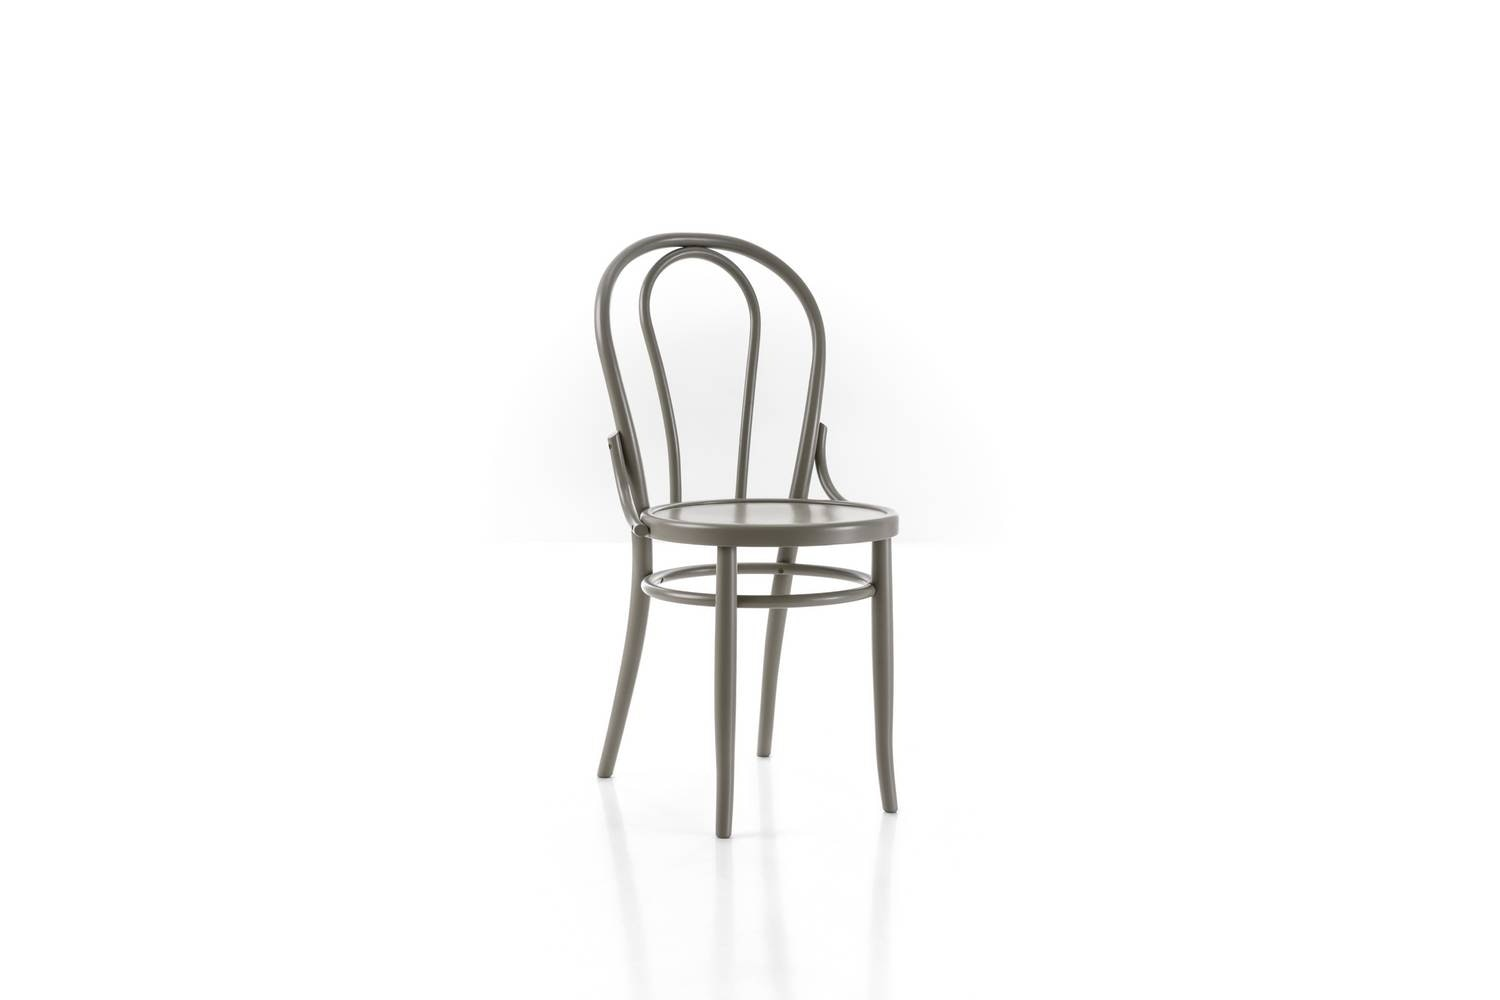 N. 18 Chair by Gebruder Thonet Vienna for Wiener GTV Design